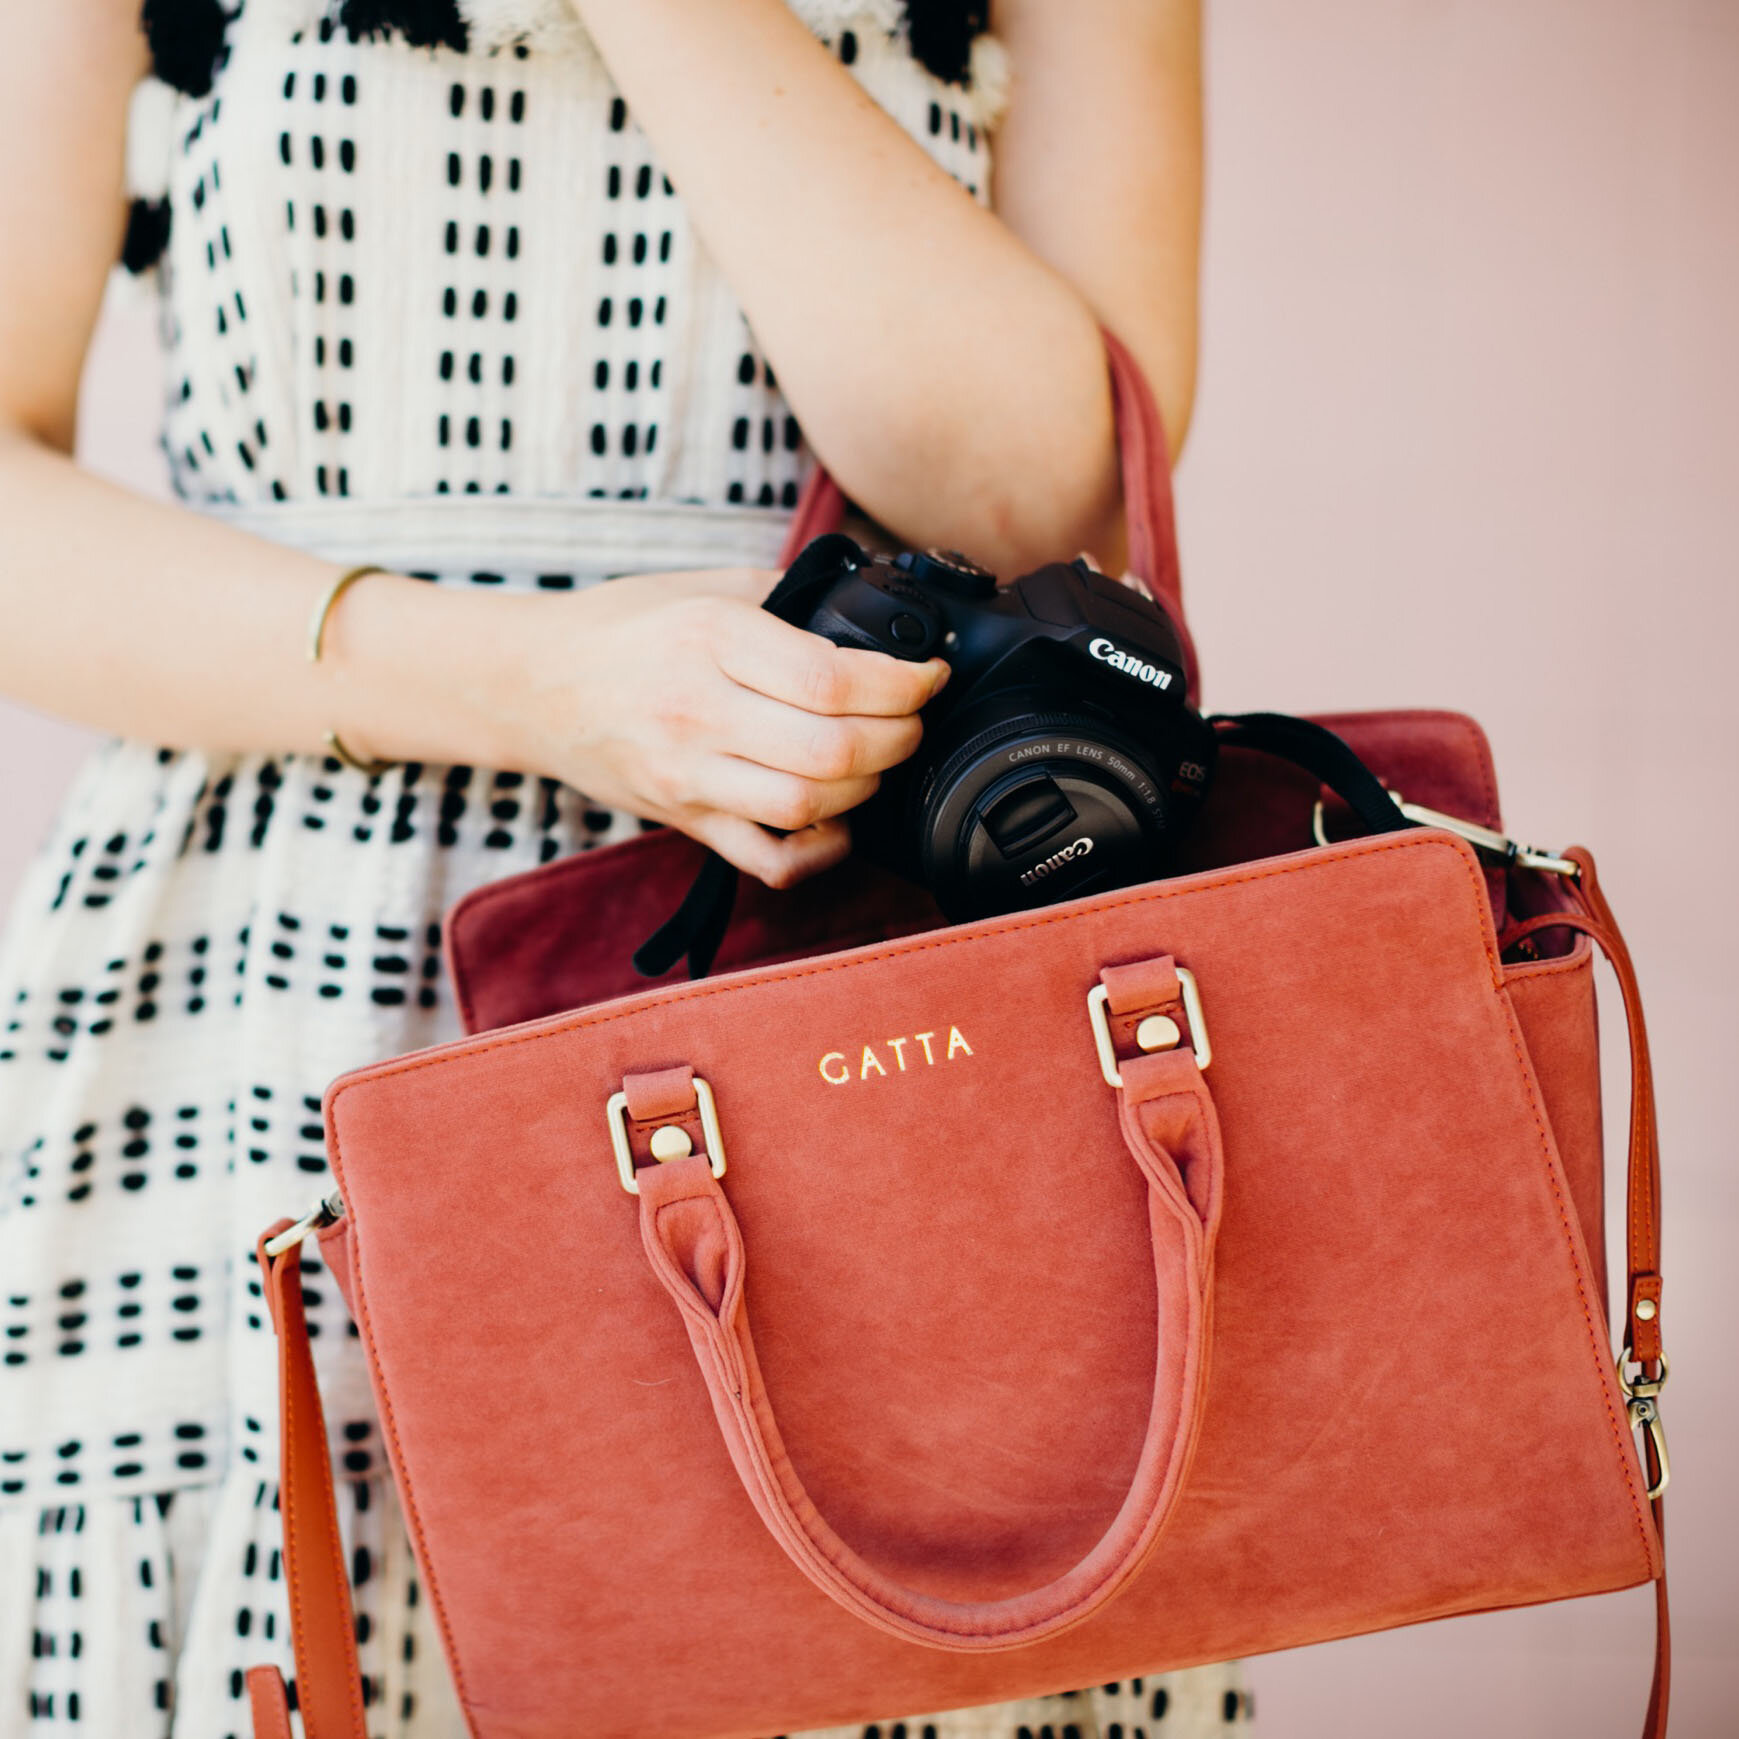 stylish camera handbag for women